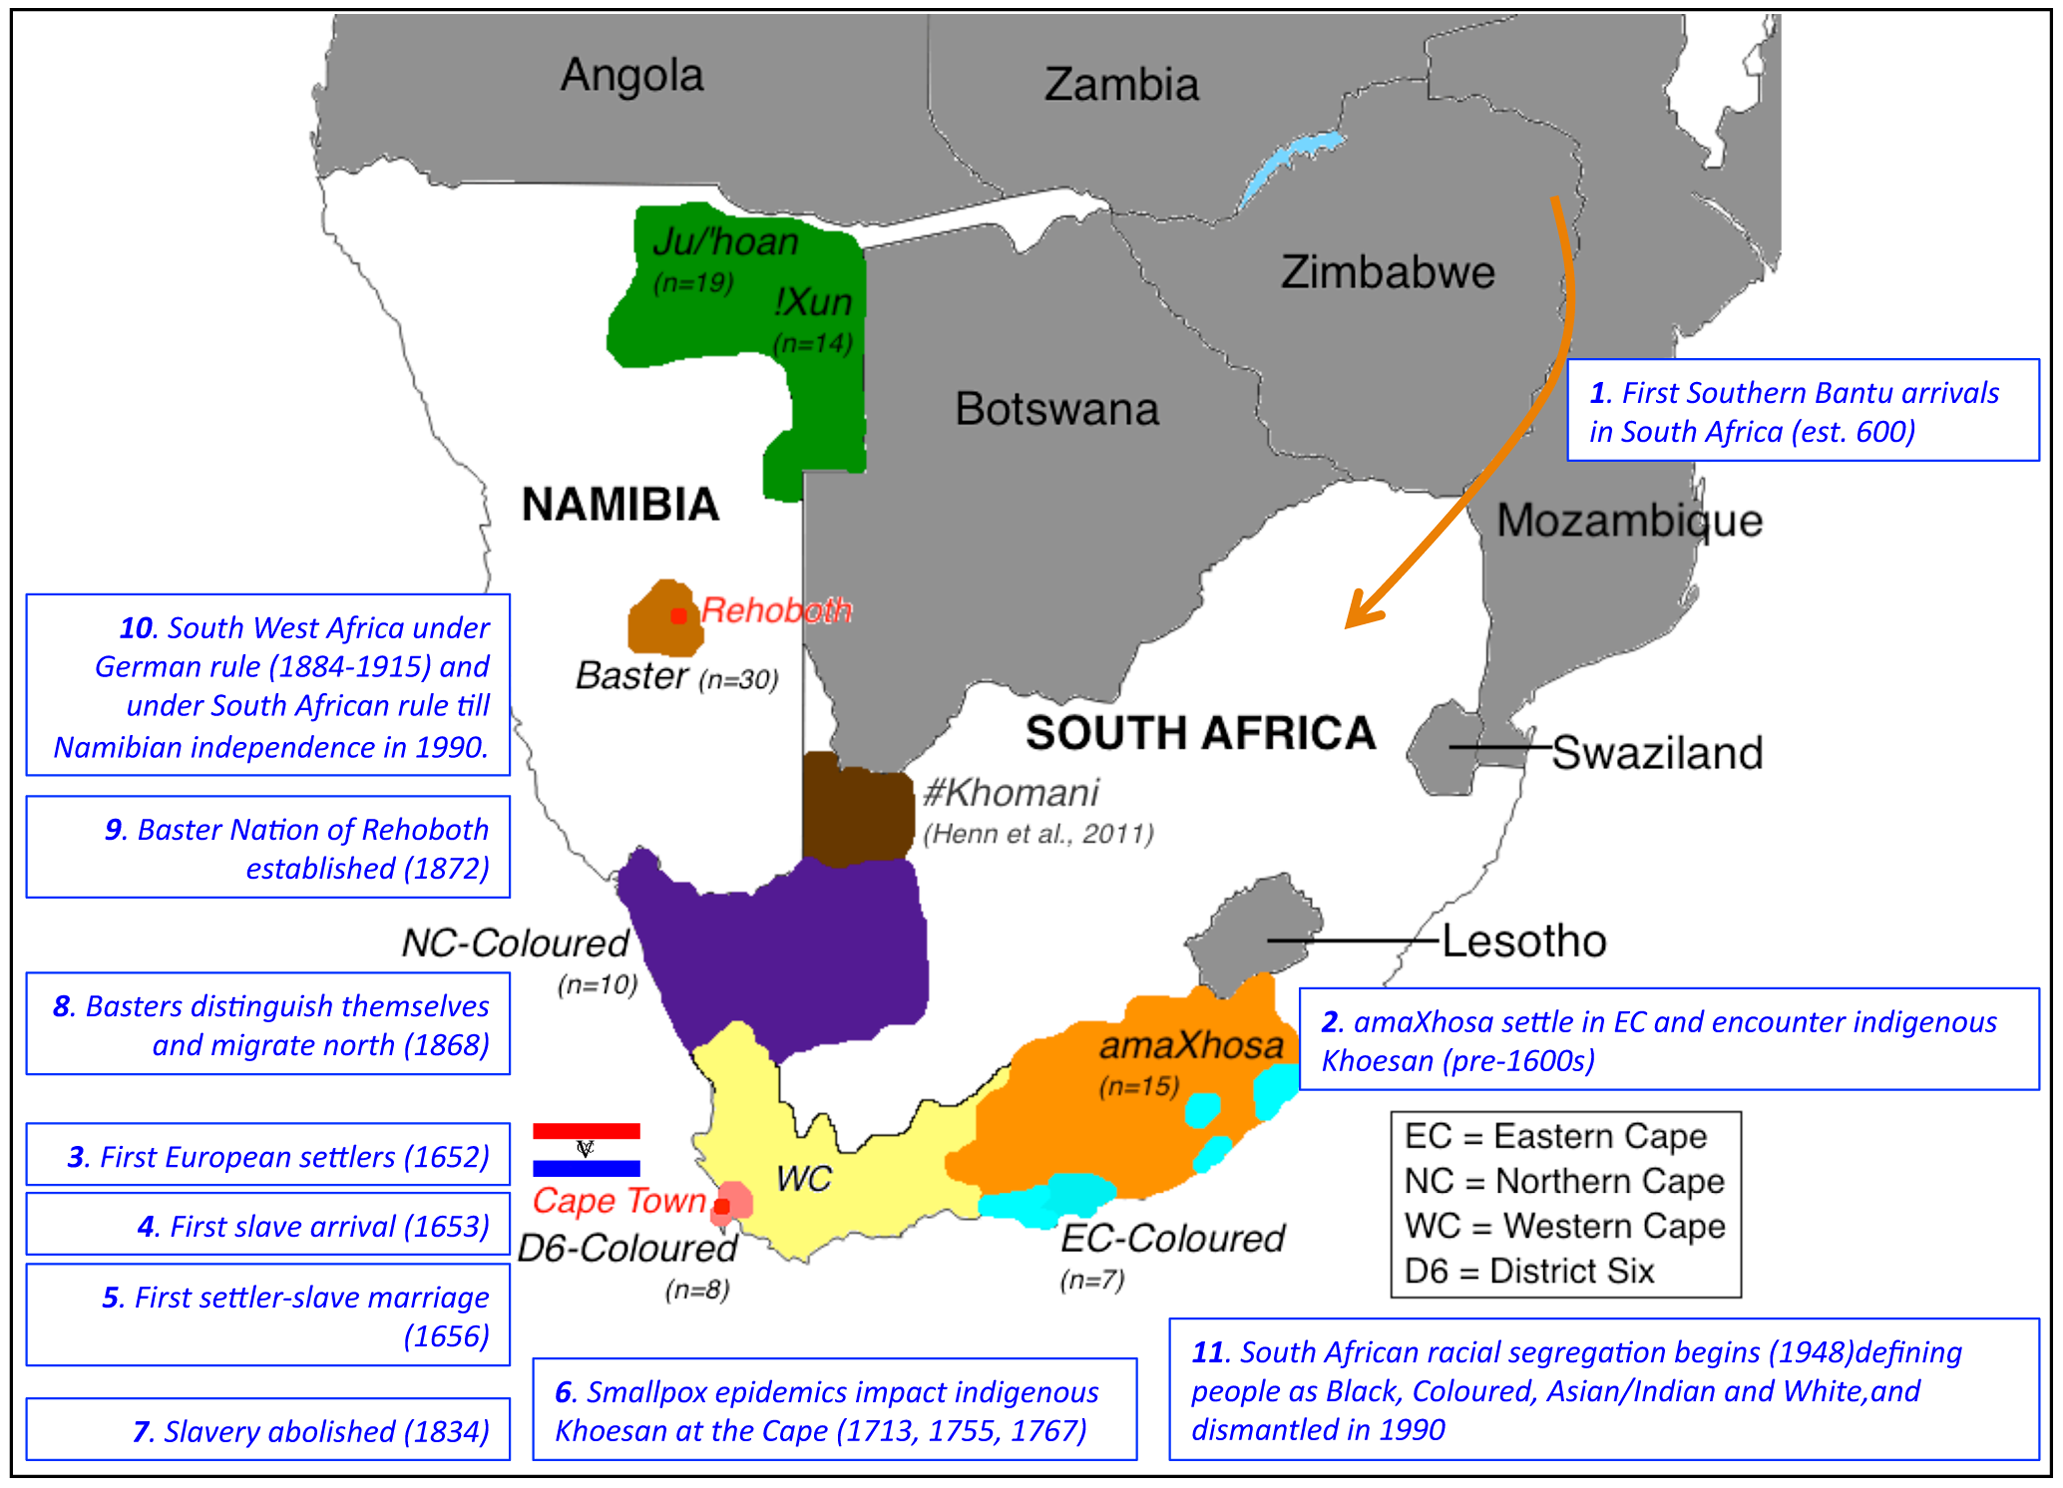 Map of southern Africa showing distribution of sampling per population identifier and significant historical events that likely shaped ancestral contributions.